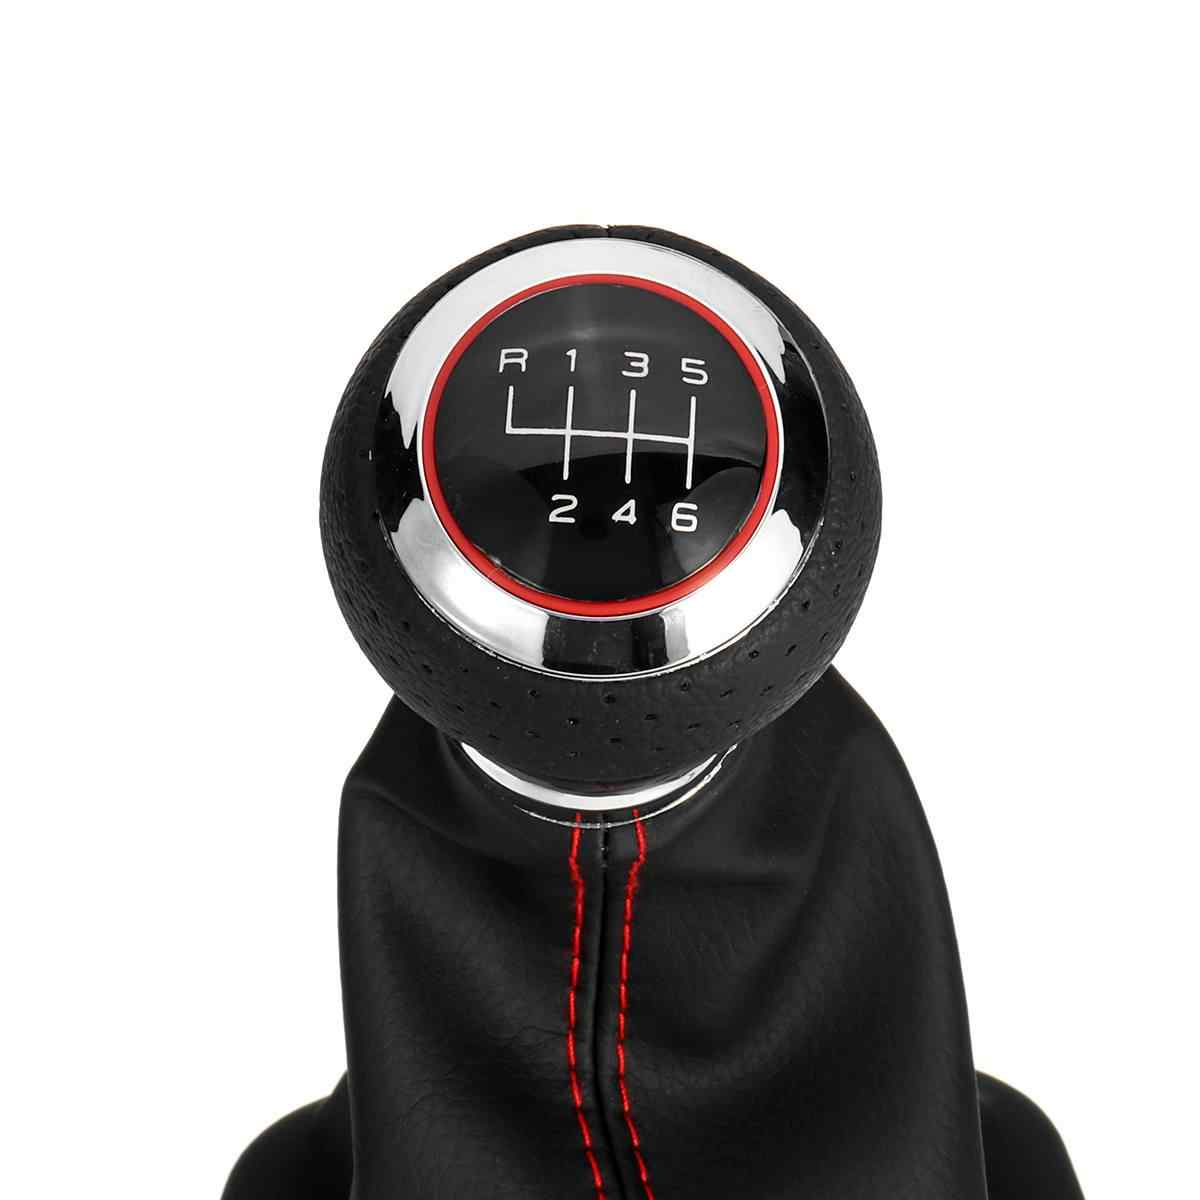 PU Leather 6 Speed Shifter Gear Shift Knob with Boot Cover Handle For Audi A3 S3 8p A4 S4 Q5